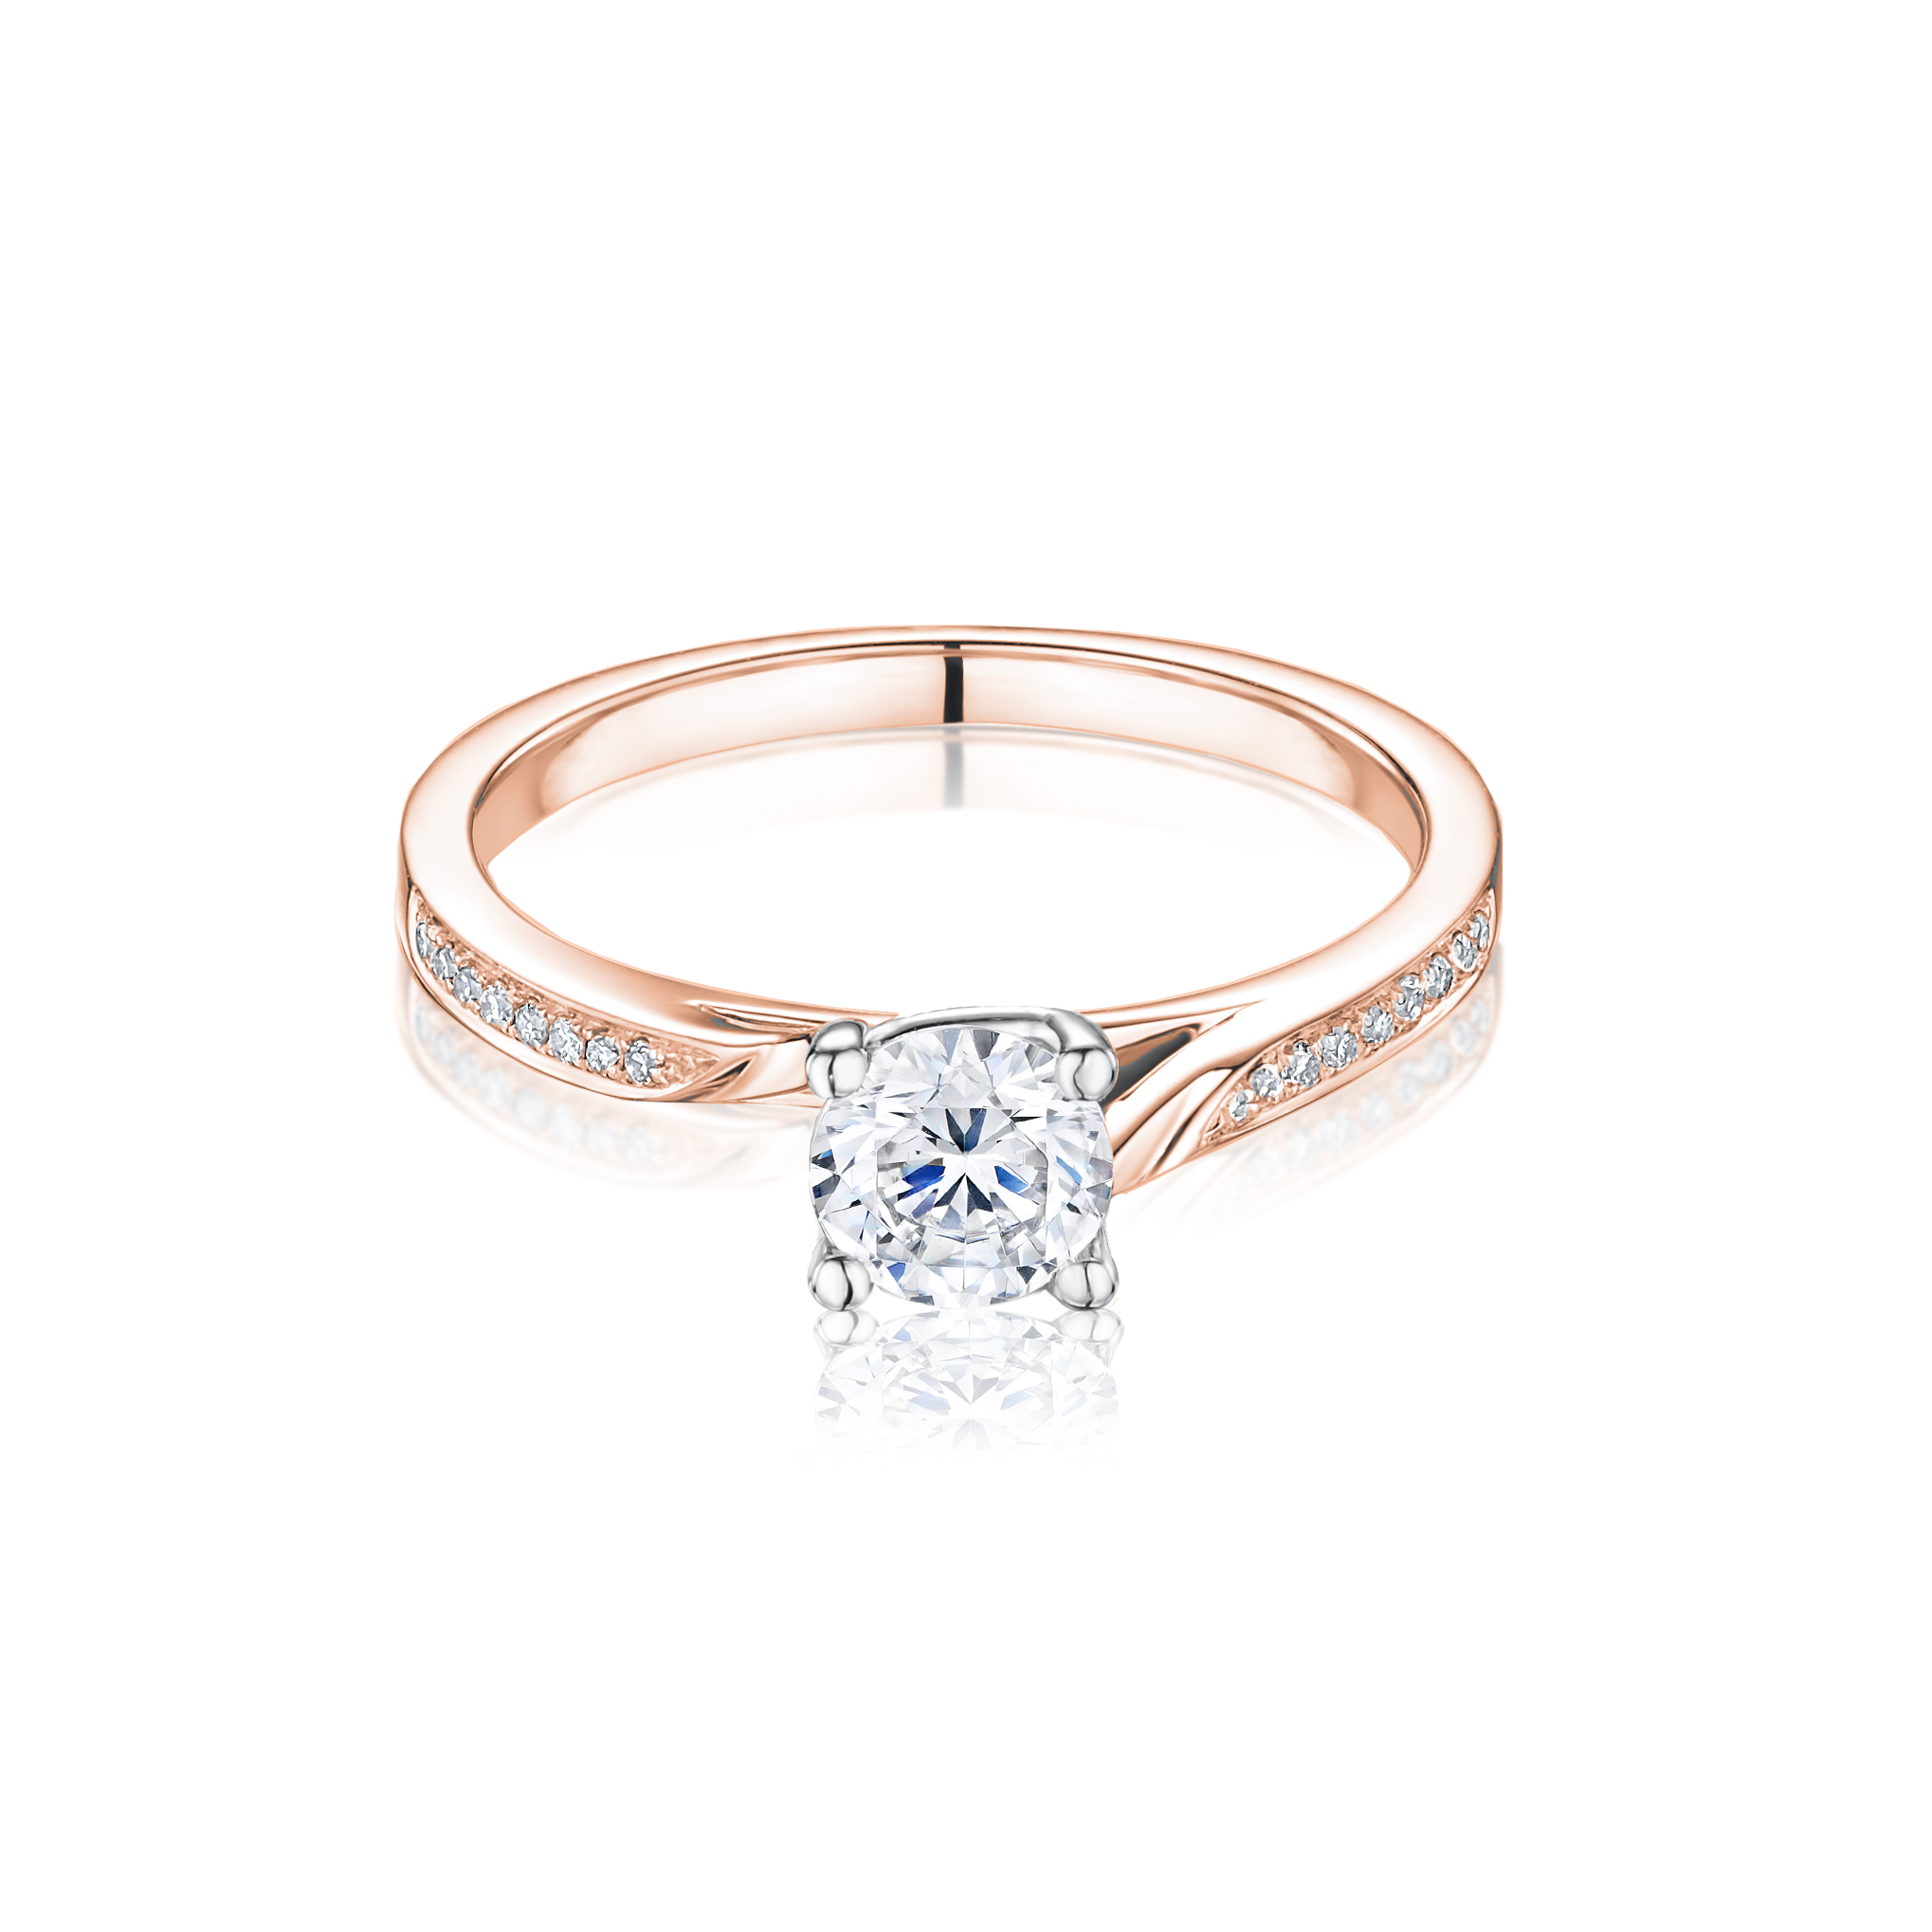 Isabella Diamond Set Engagement Ring in 18ct rose gold £1,295